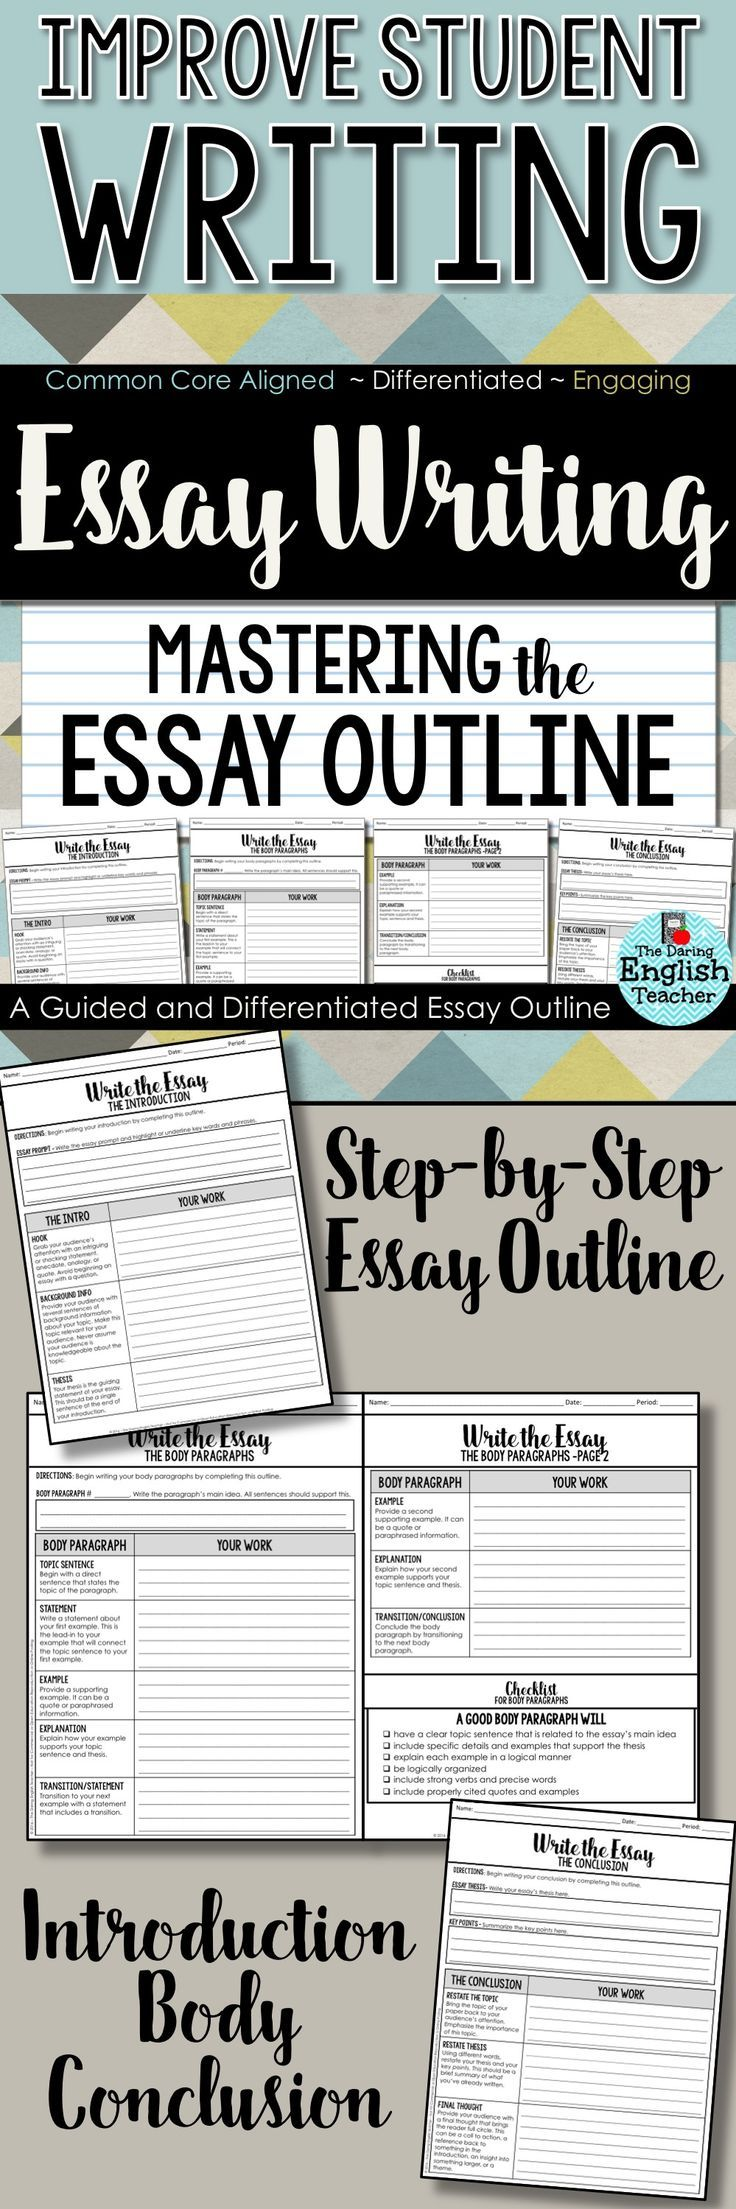 Research Papers Examples Essays Essay Writing Mastering The Essay Outline With Guided Instructions Population Essay In English also Sample Essays High School Students Best  Outline Essay Ideas On Pinterest  Essay Plan Essay On  English Essays Samples